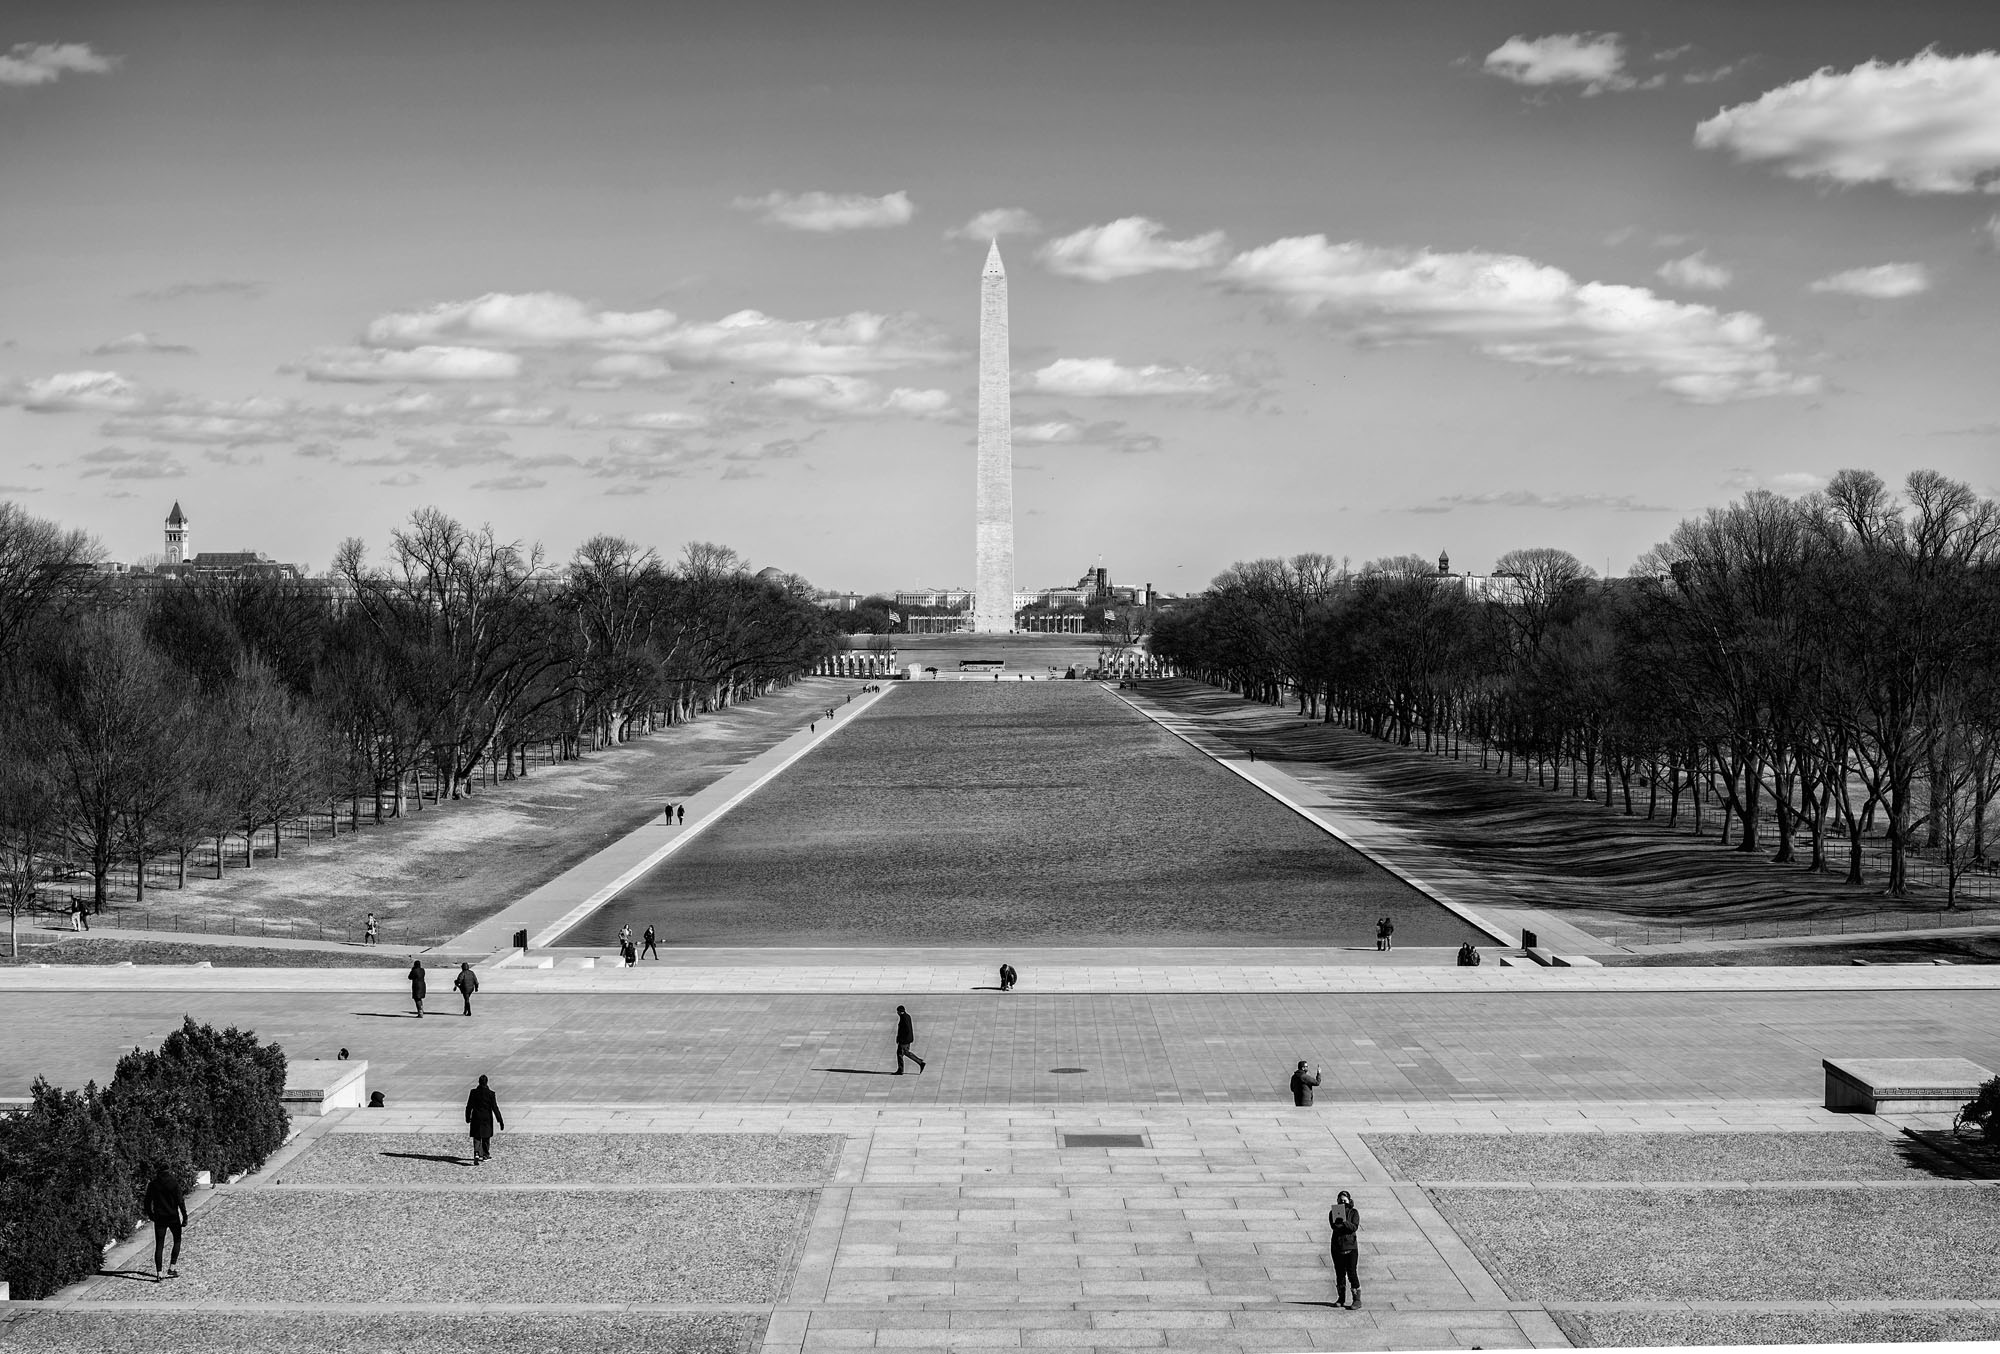 A view of the Reflecting Pool and Washington Monument from the Lincoln Memorial on February 13, 2017.